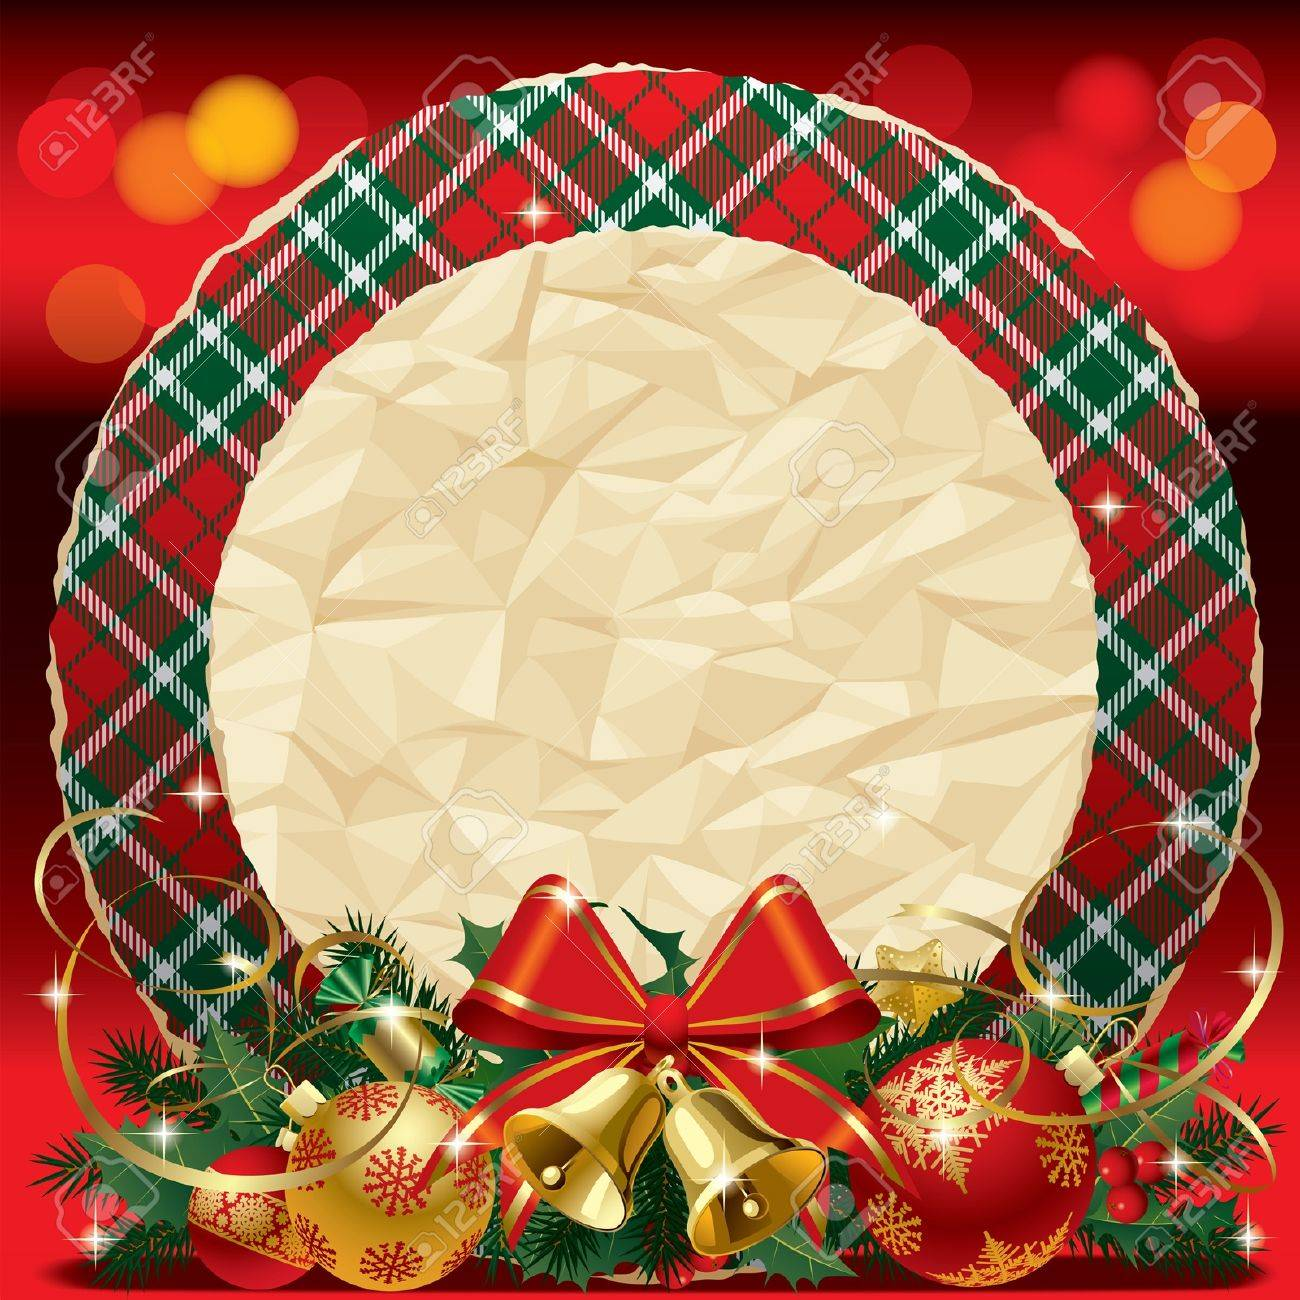 Vector round Xmas card with the tartan pattern, red ribbon, gold bells and crumpled paper on the red shining background Stock Vector - 16415668